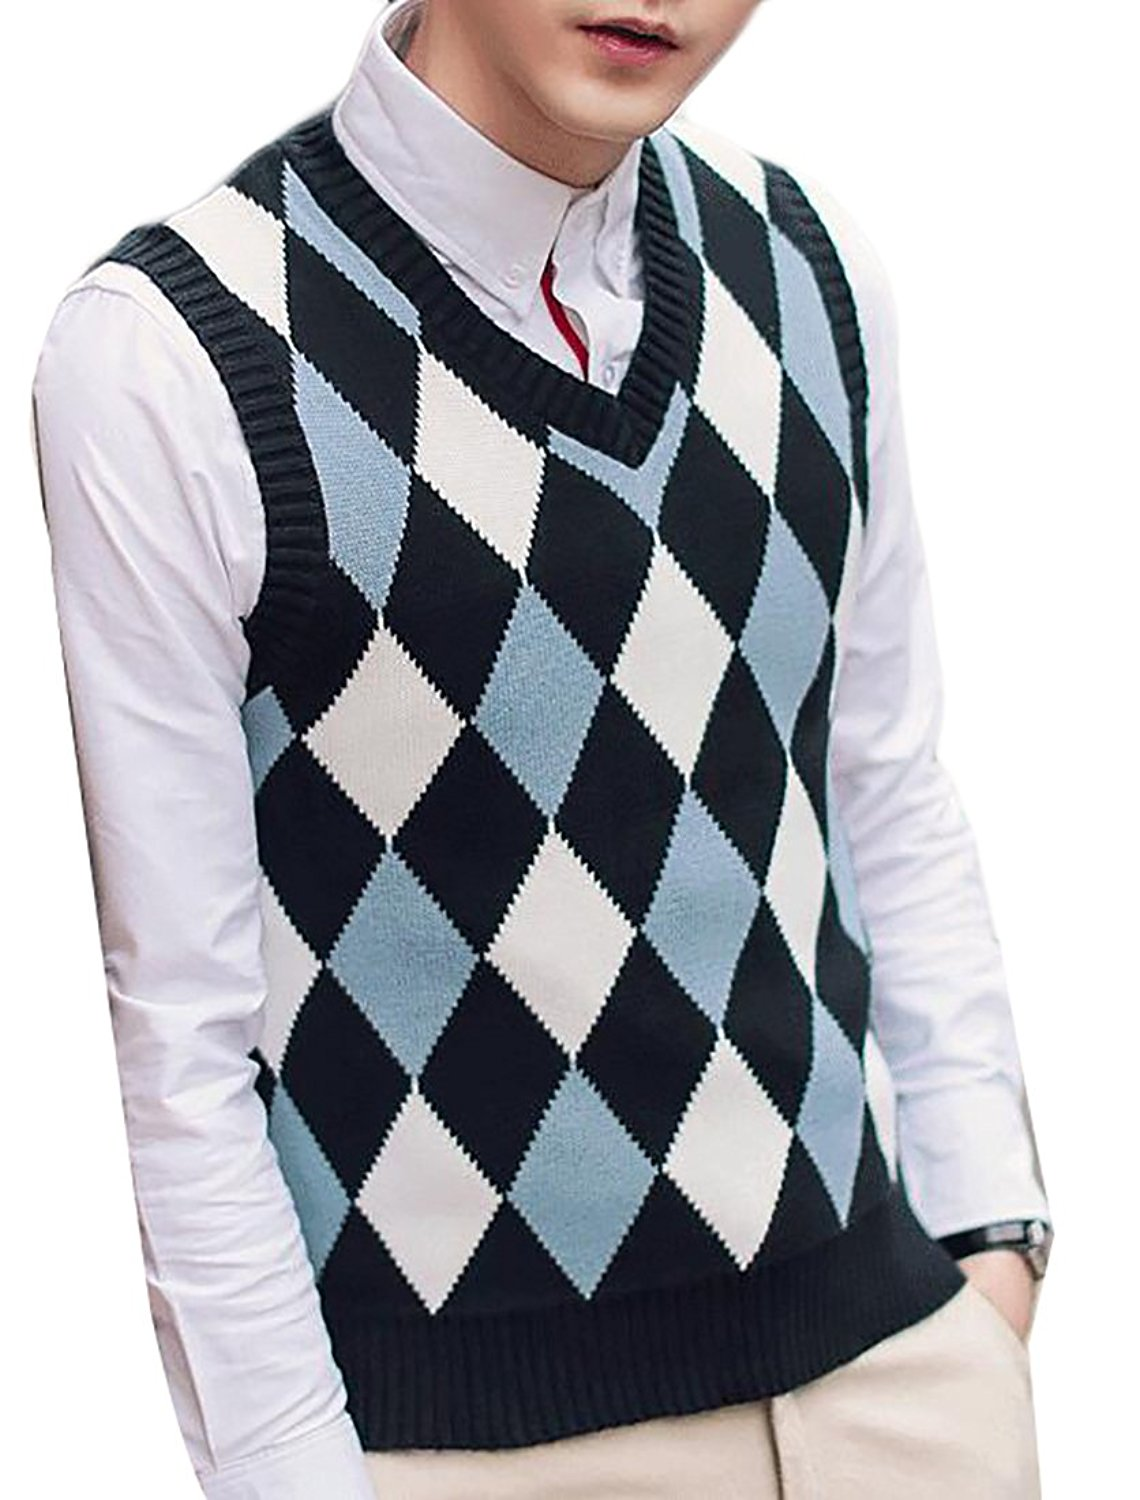 7a715be99ad85 Get Quotations · Papijam Mens Business Argyle Pattern V-neck Knitted Casual Sweater  Vest